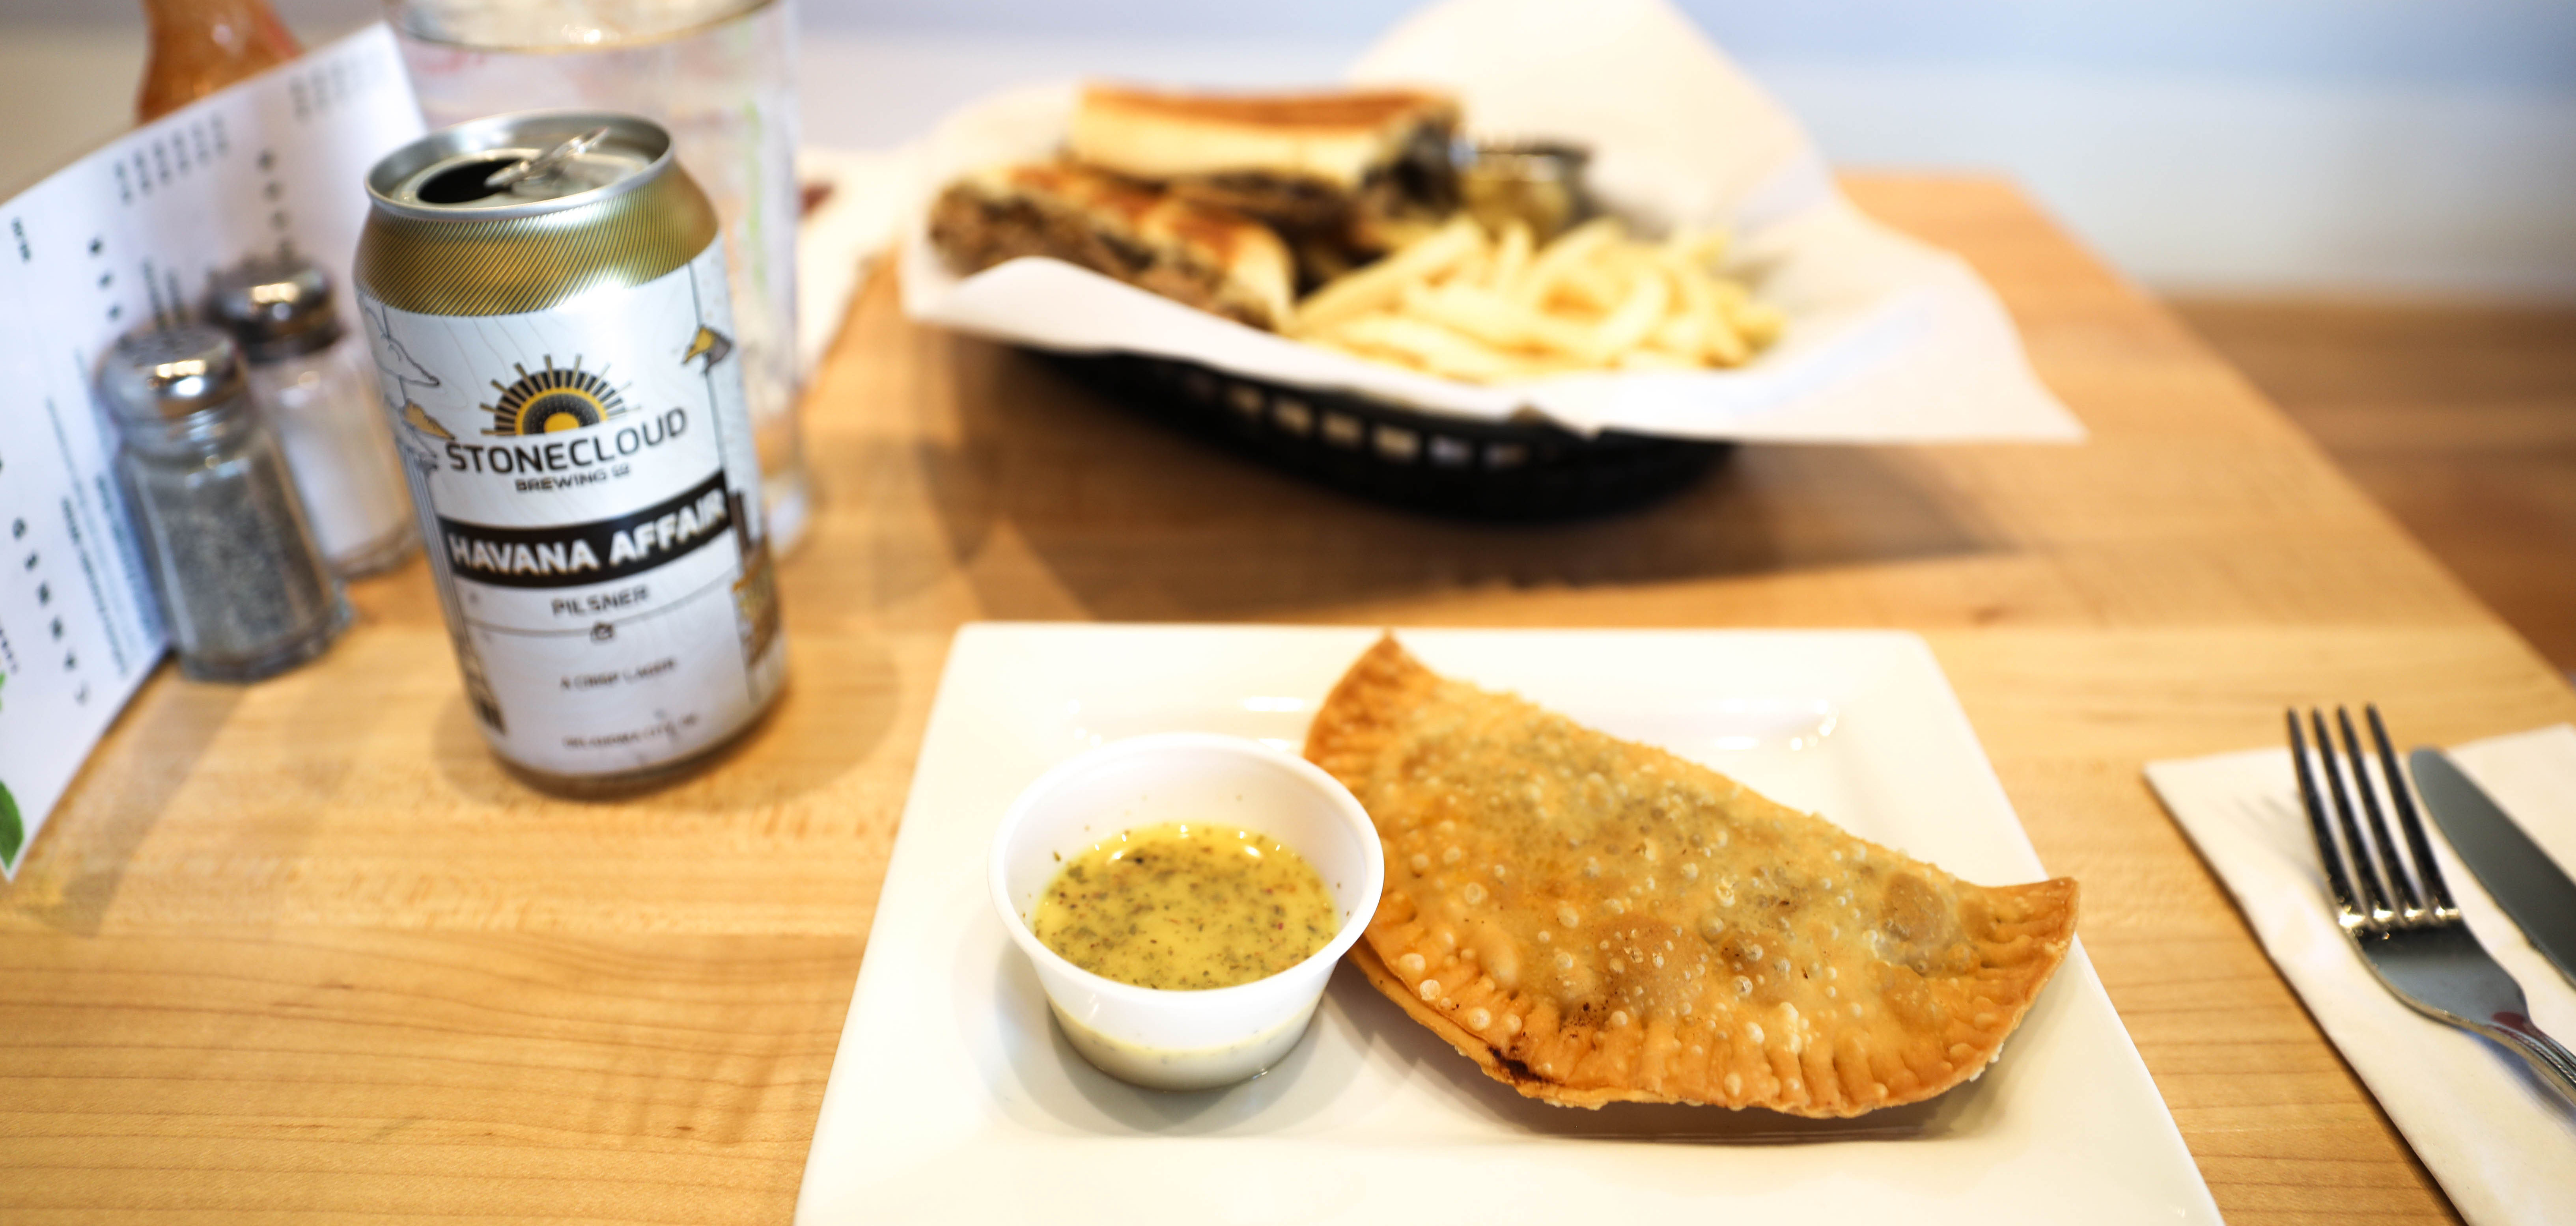 Empanadas sit on a table next to a Stonecloud beer at Mangos Cuban Cafe in Tulsa, Oklahoma.